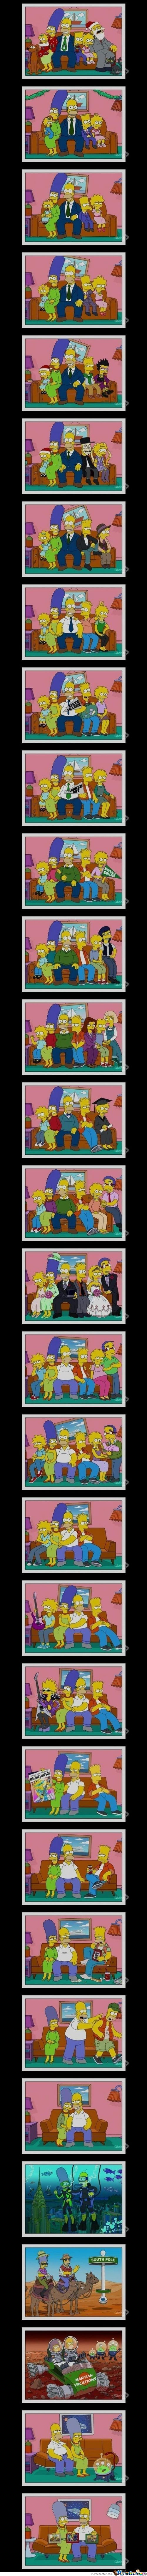 The Simpsons Future !